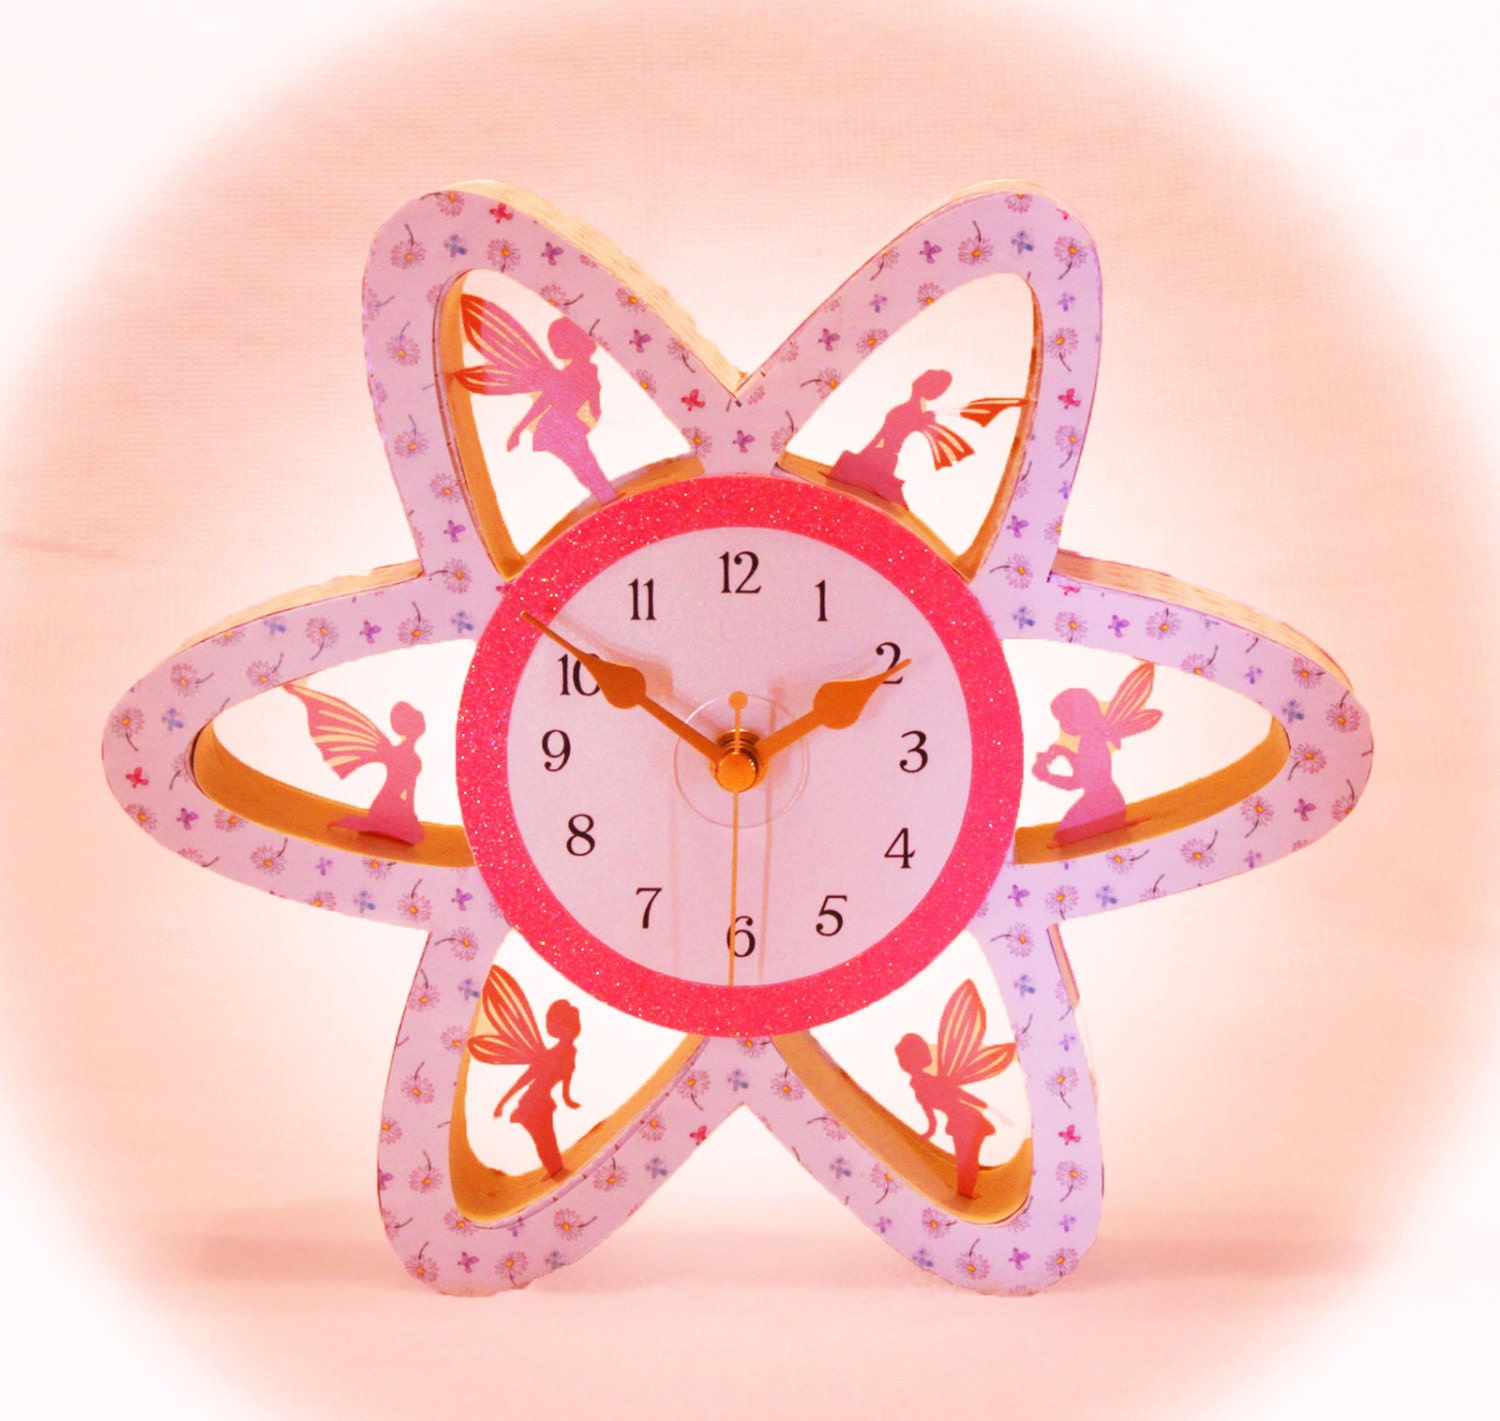 3d Svg Flower Clock With Fairies Digital Download